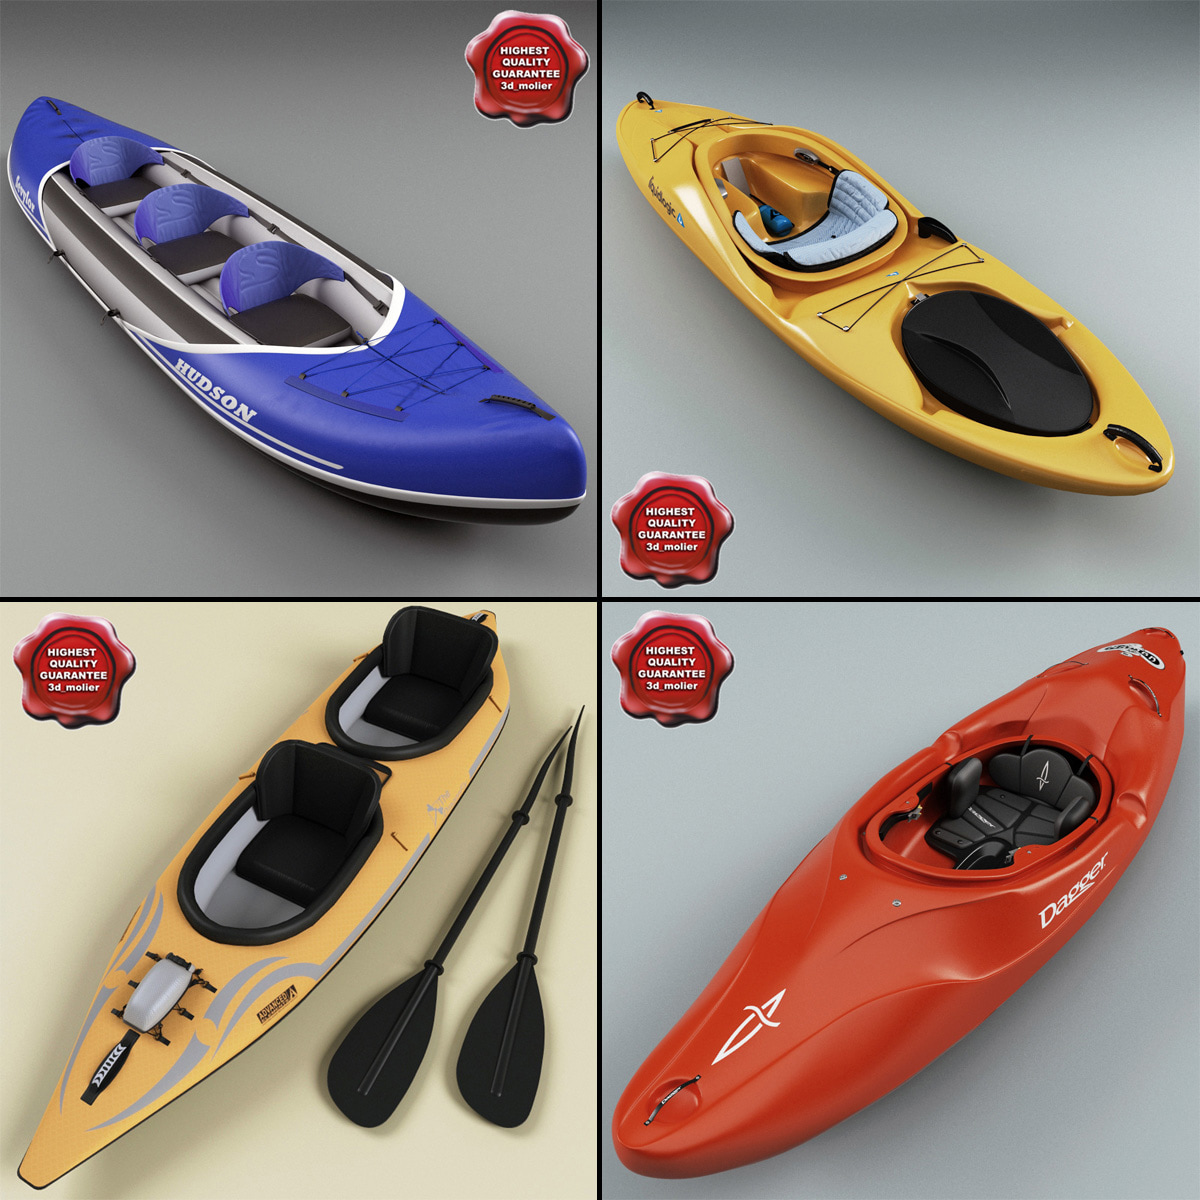 Kayaks_Collection_00.jpg